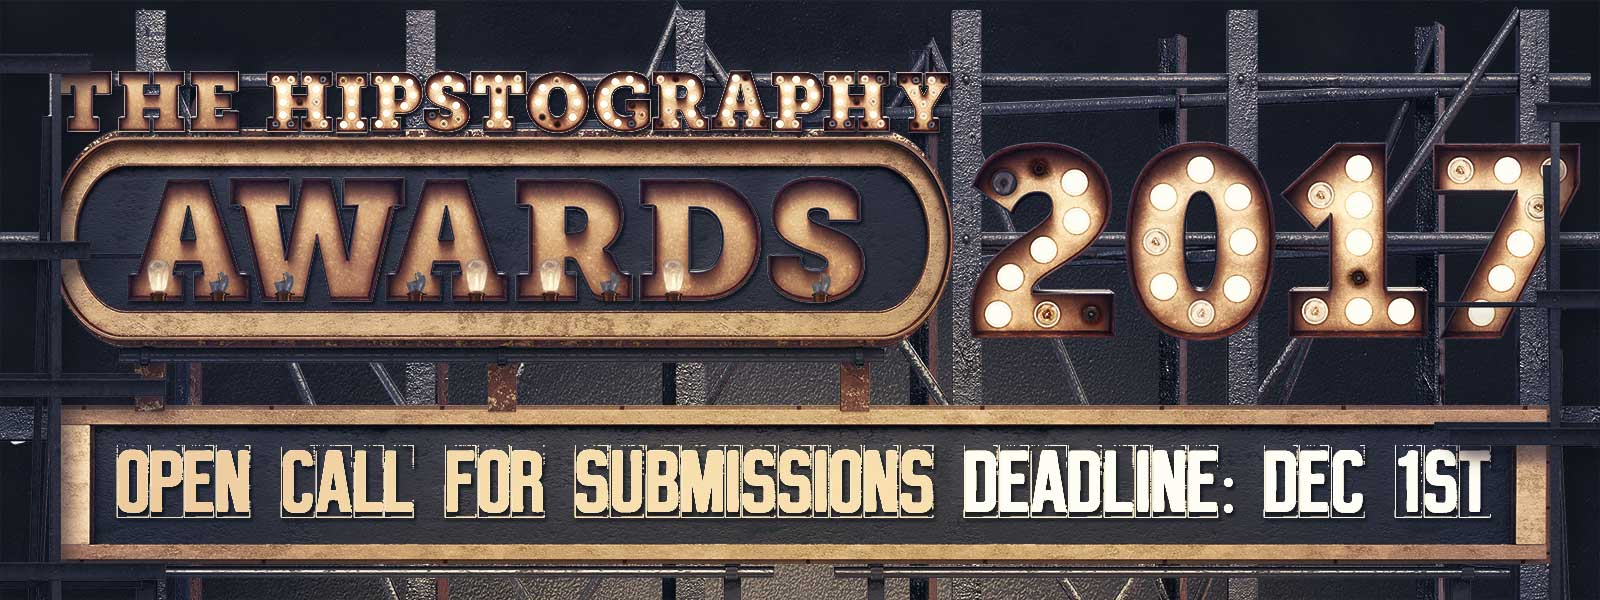 Awards-2017-Open-Call-banner